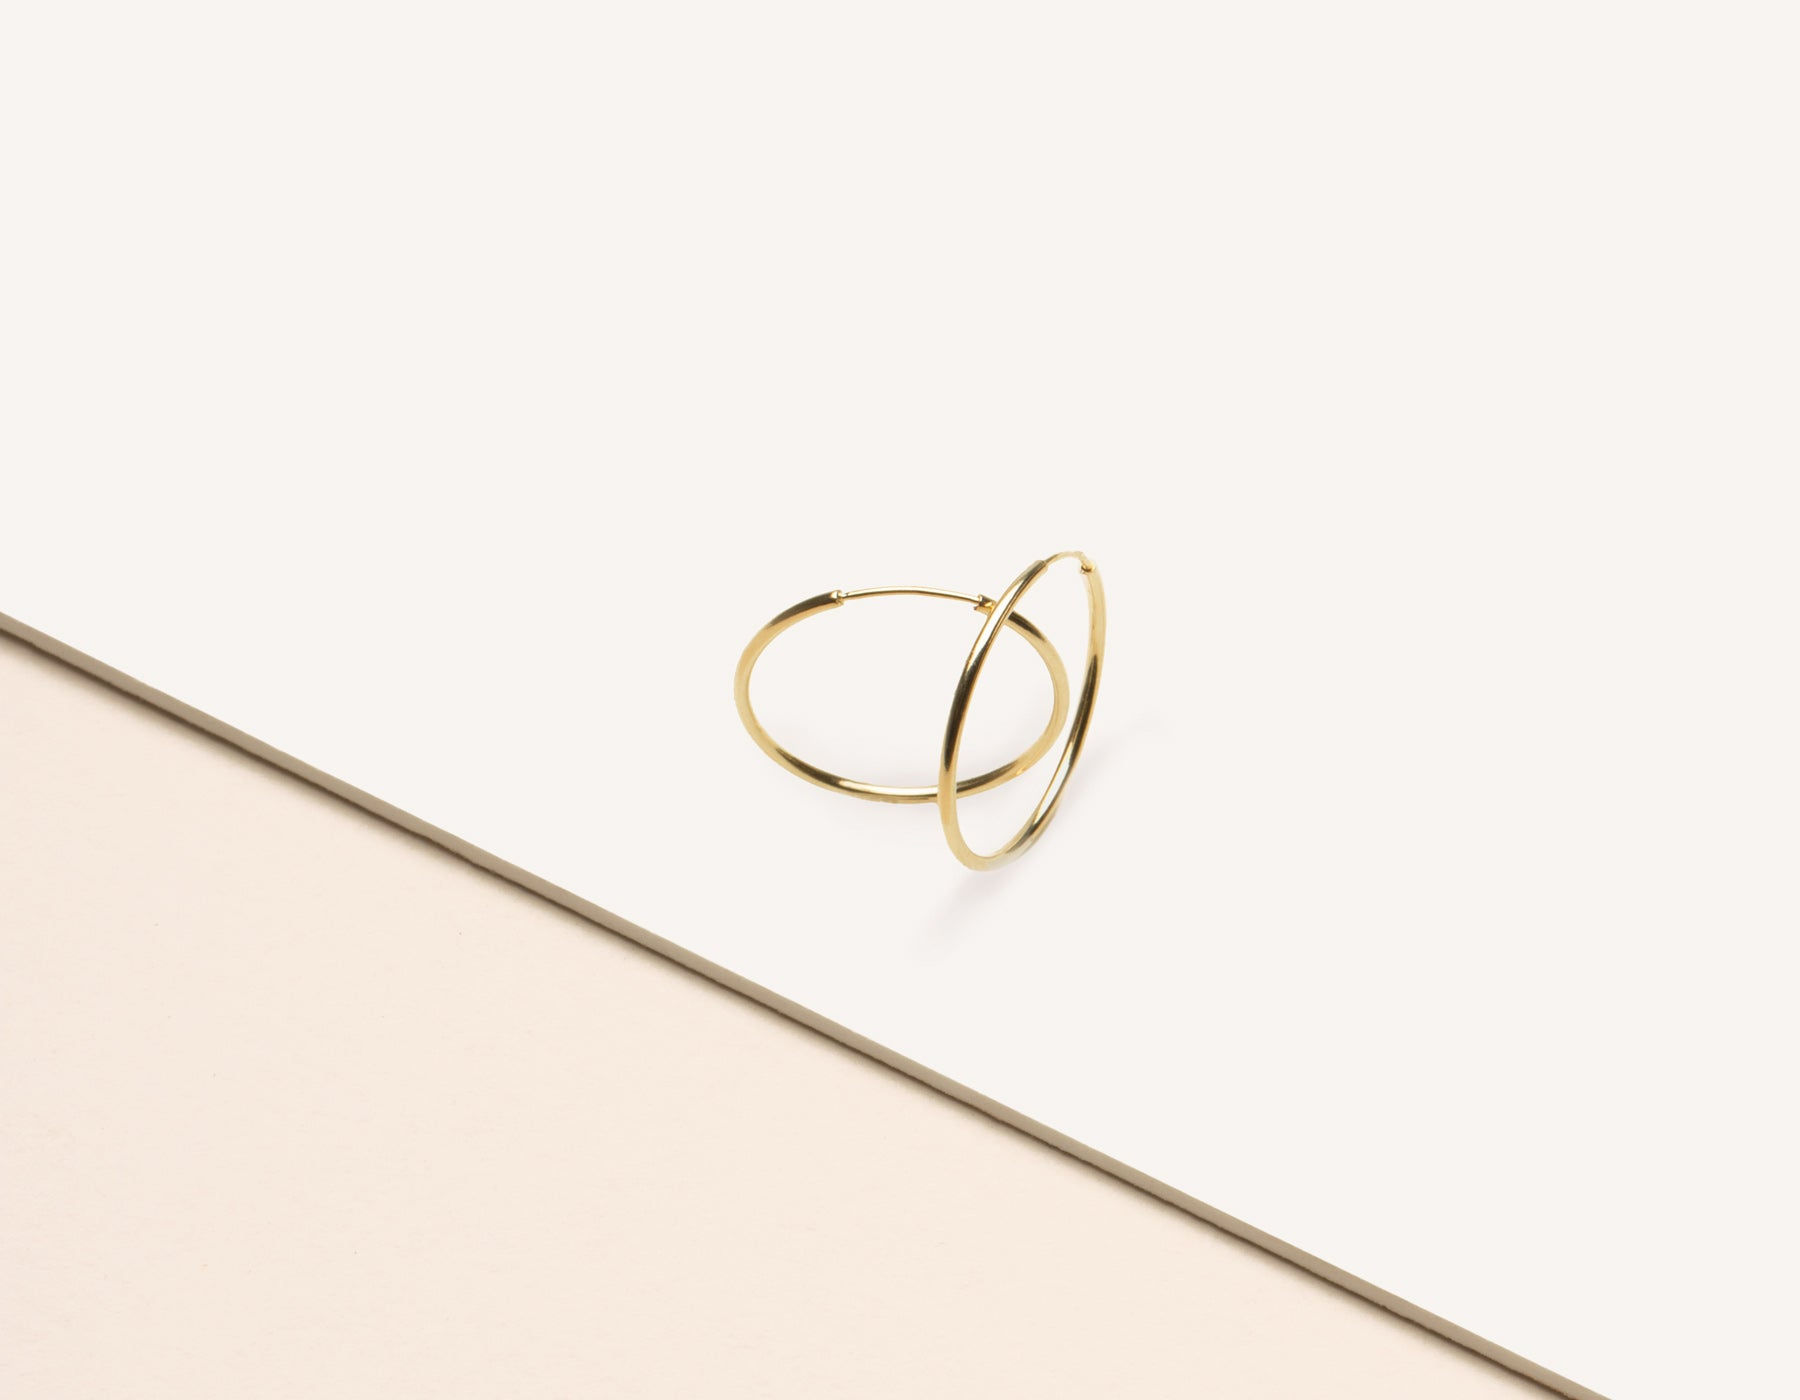 modern minimalist Medium Lightweight Hoop earrings 14k solid gold Vrai & Oro sustainable jewelry, 14K Yellow Gold